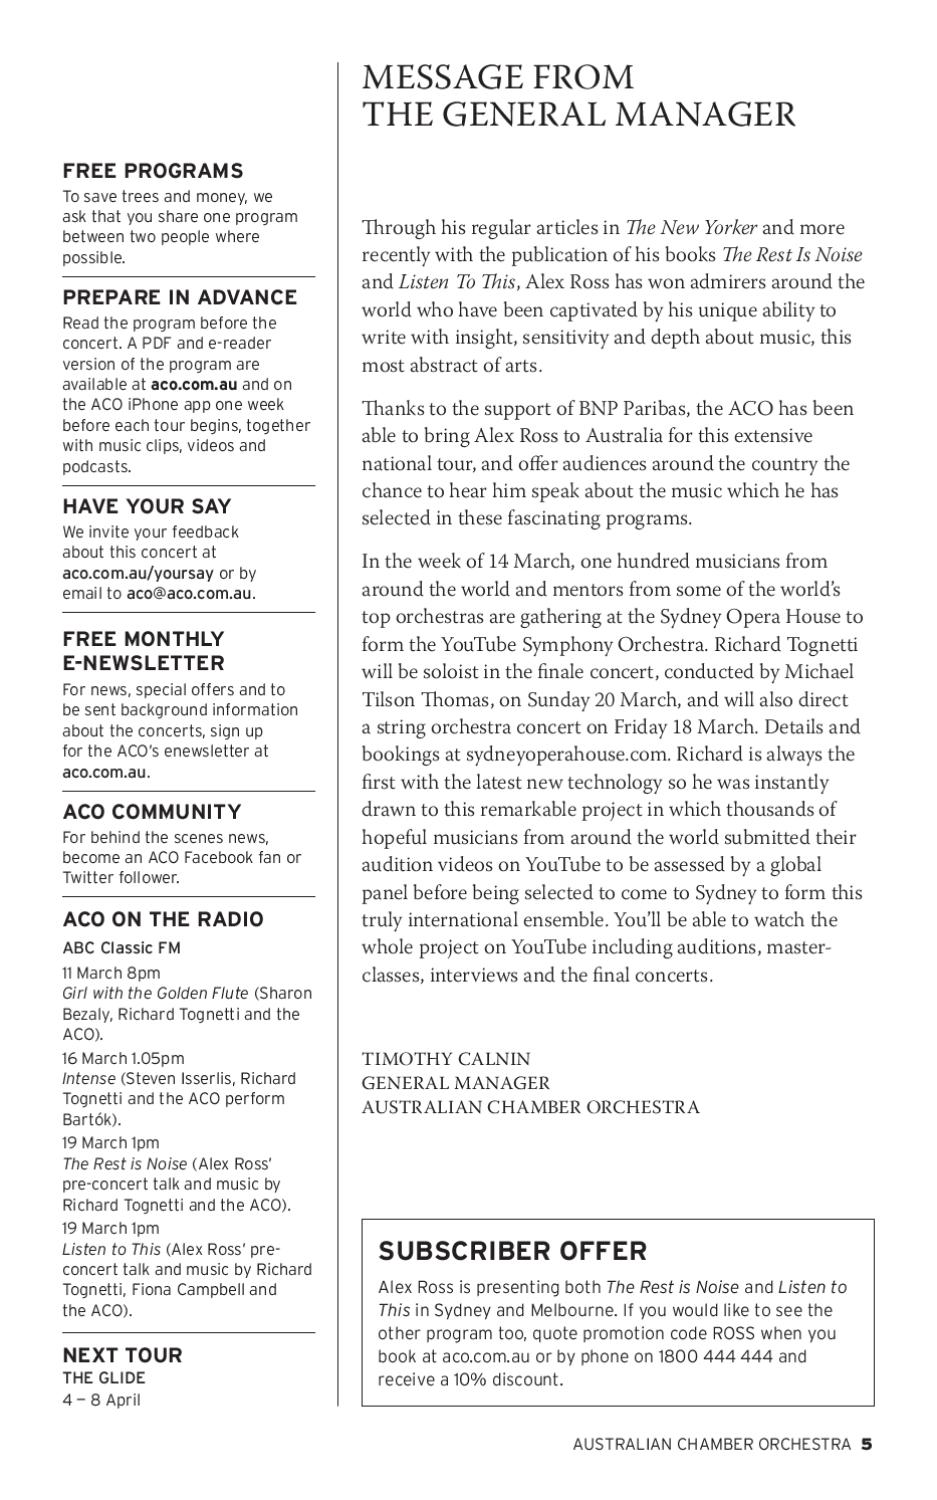 Alex Ross concert program by Australian Chamber Orchestra